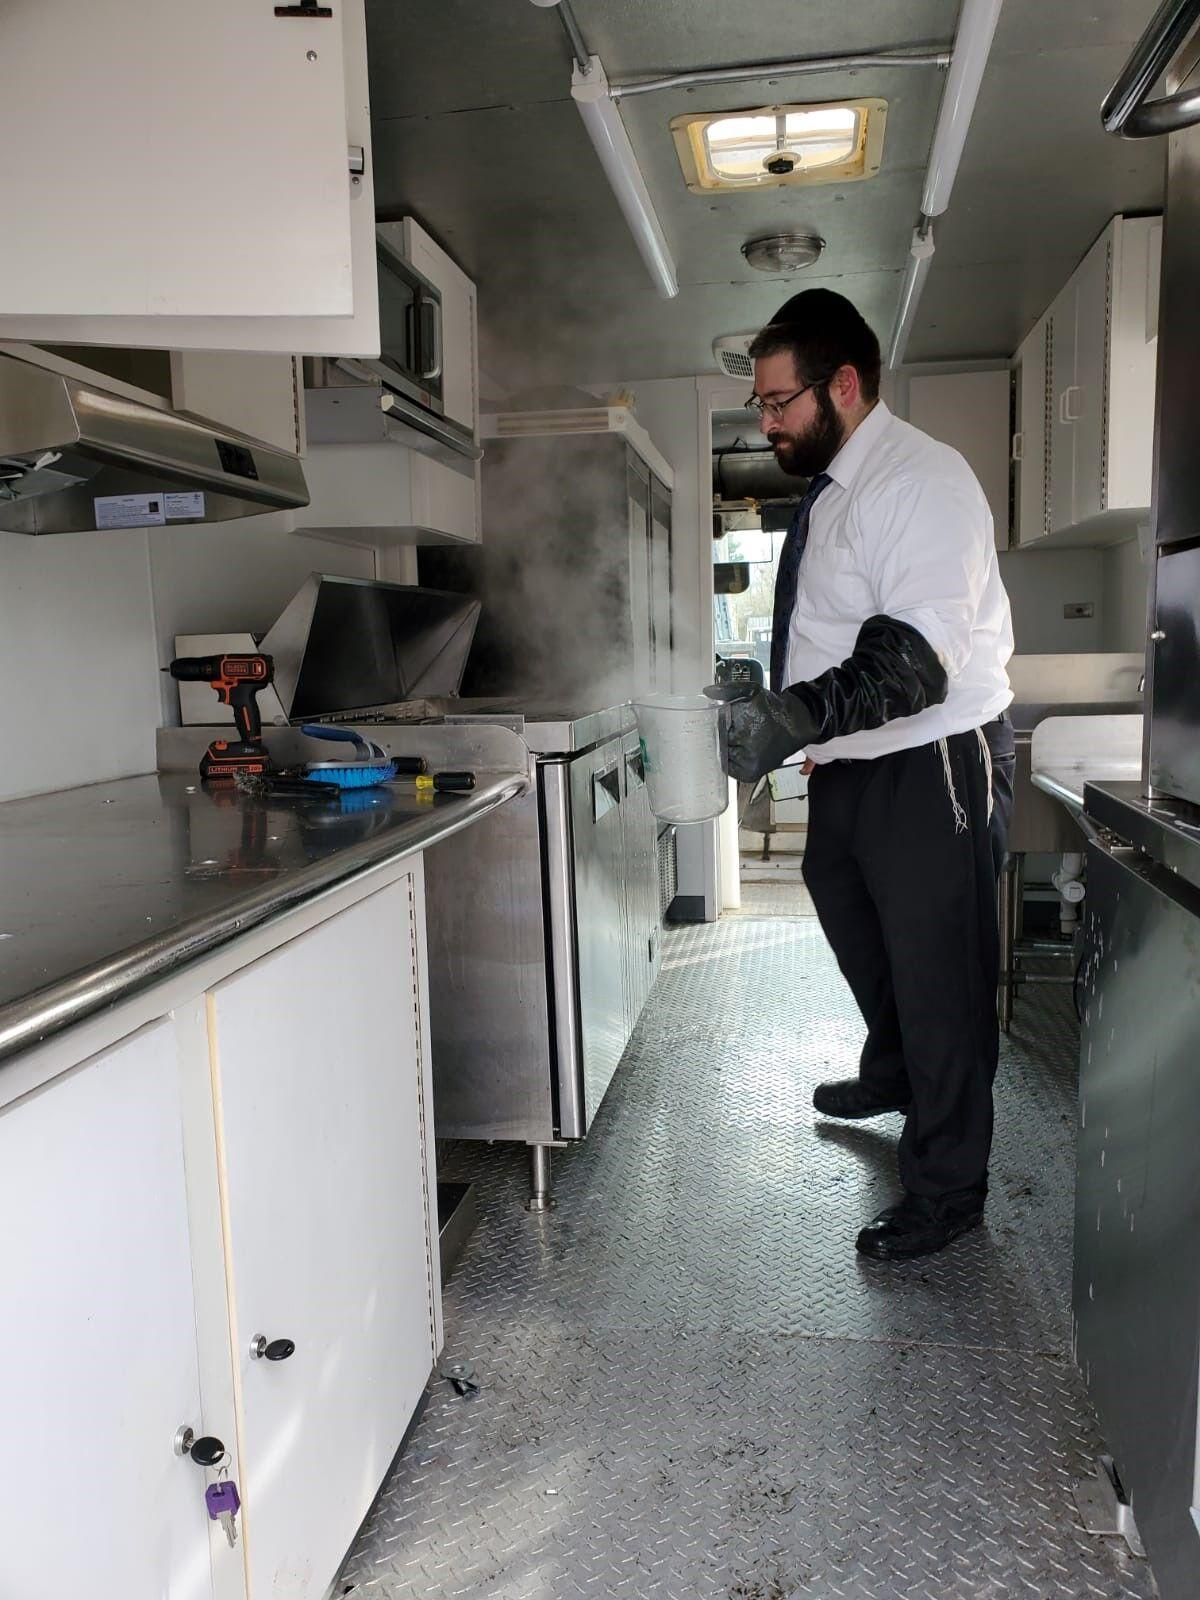 Rabbi Lazer Fisher inside the truck prior to kosher certification.